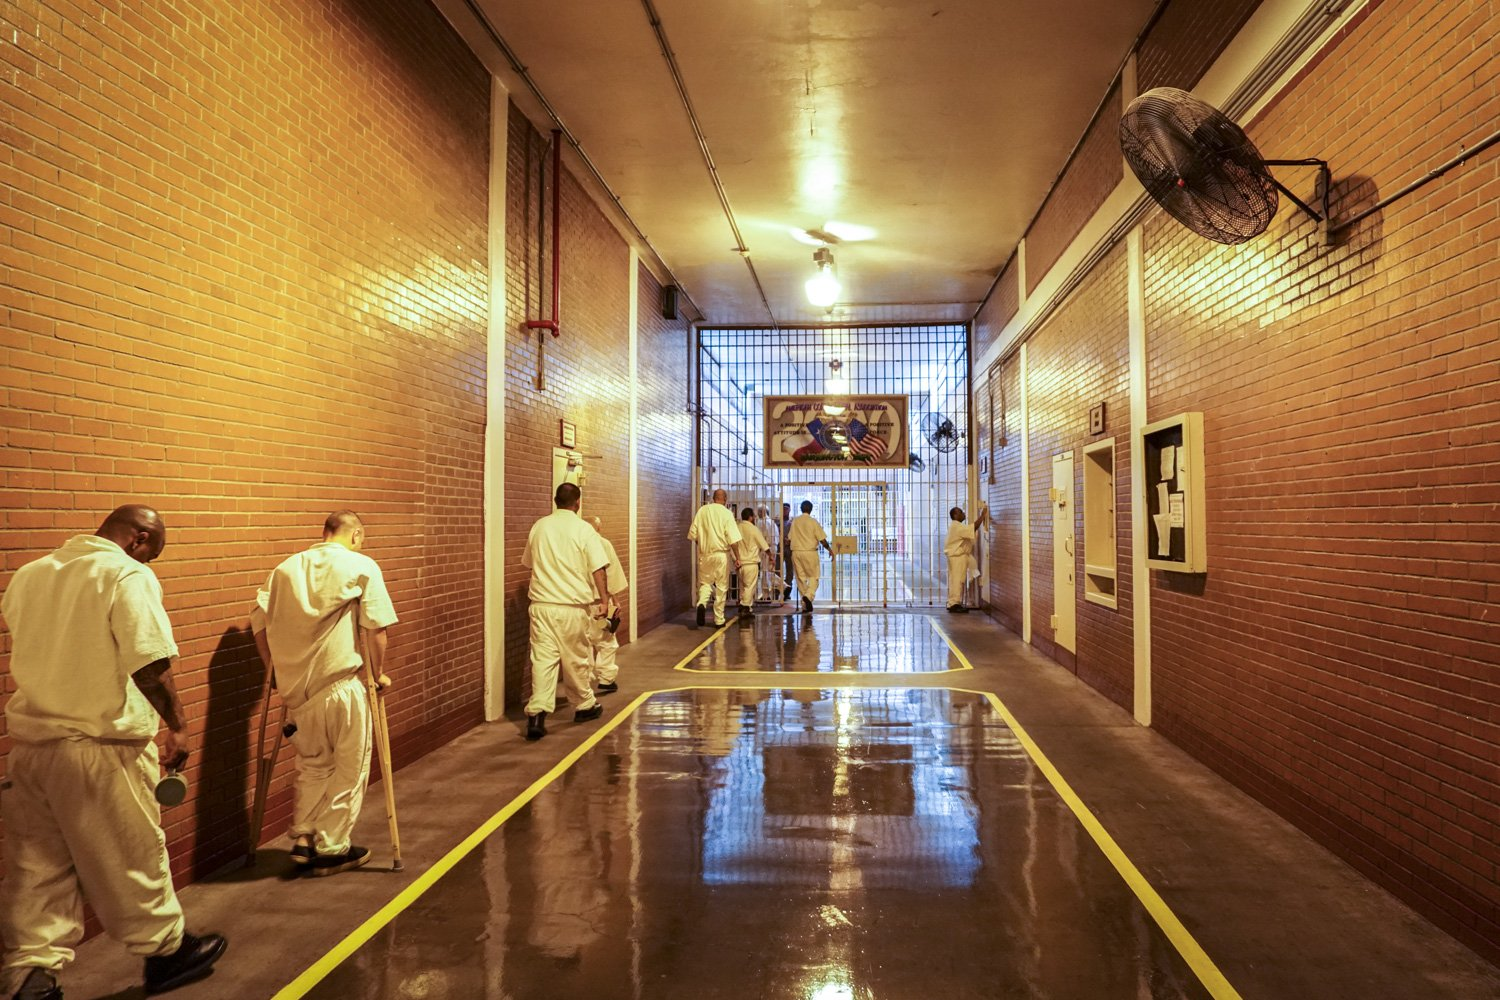 Inmates shuffle past new fans in the Darrington prison's main hallway on a hot July day.